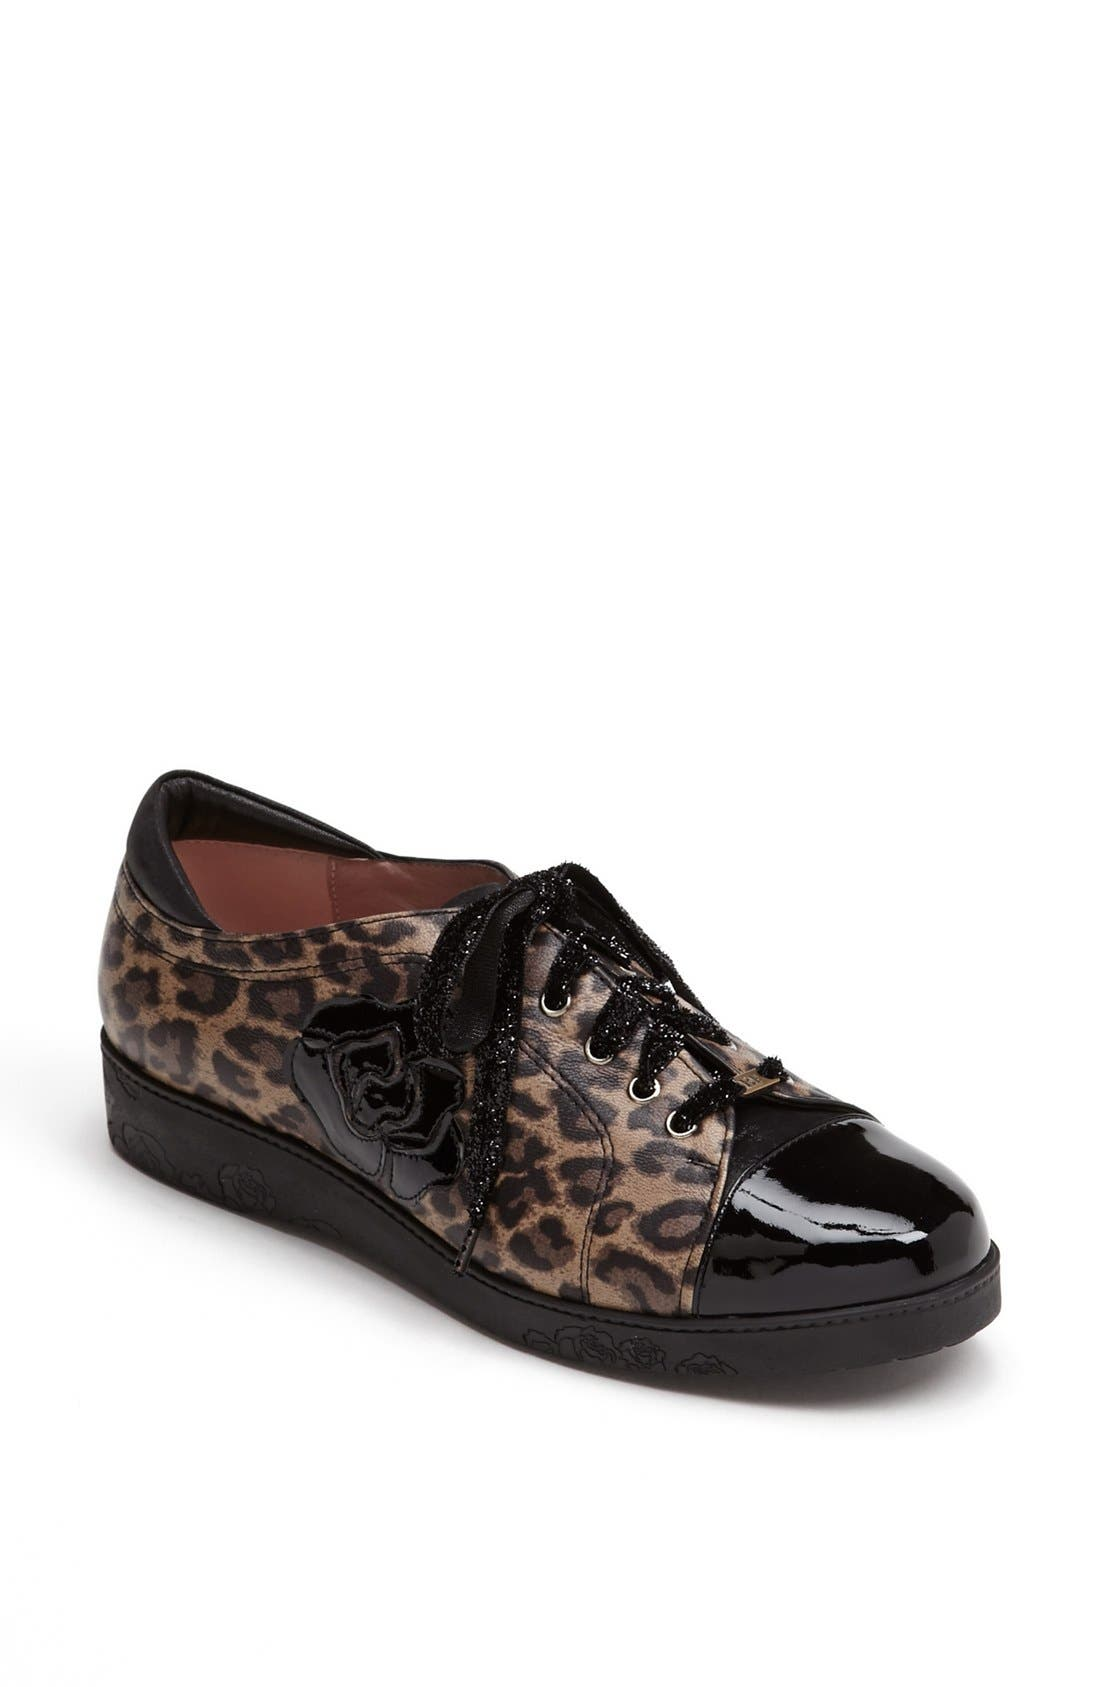 'Aria' Sneaker,                         Main,                         color, Leopard Print Leather